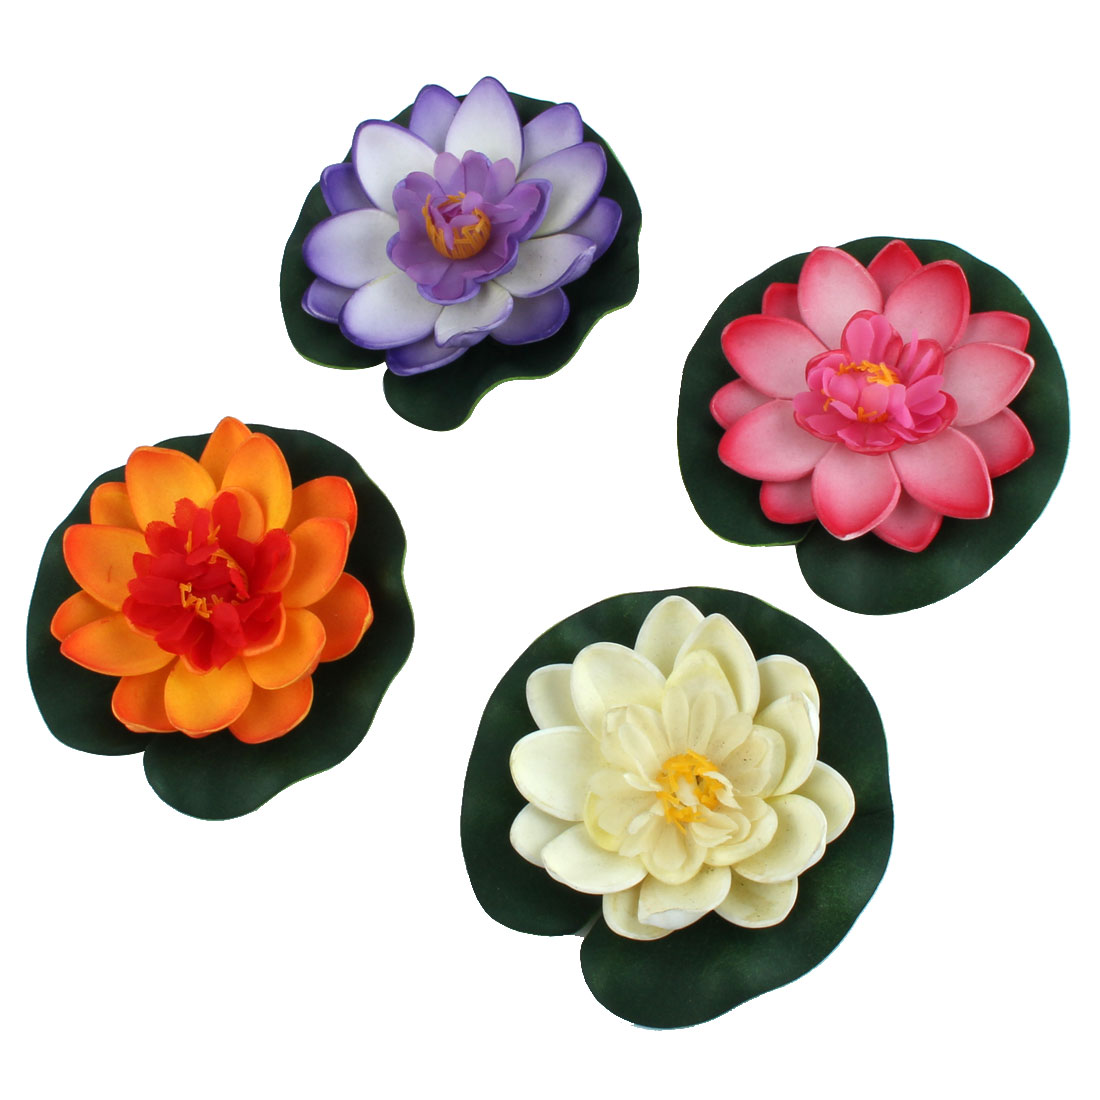 Aquarium Fish Tank Pond Simulation Lotus Flower Plant Decor Ornament 4pcs